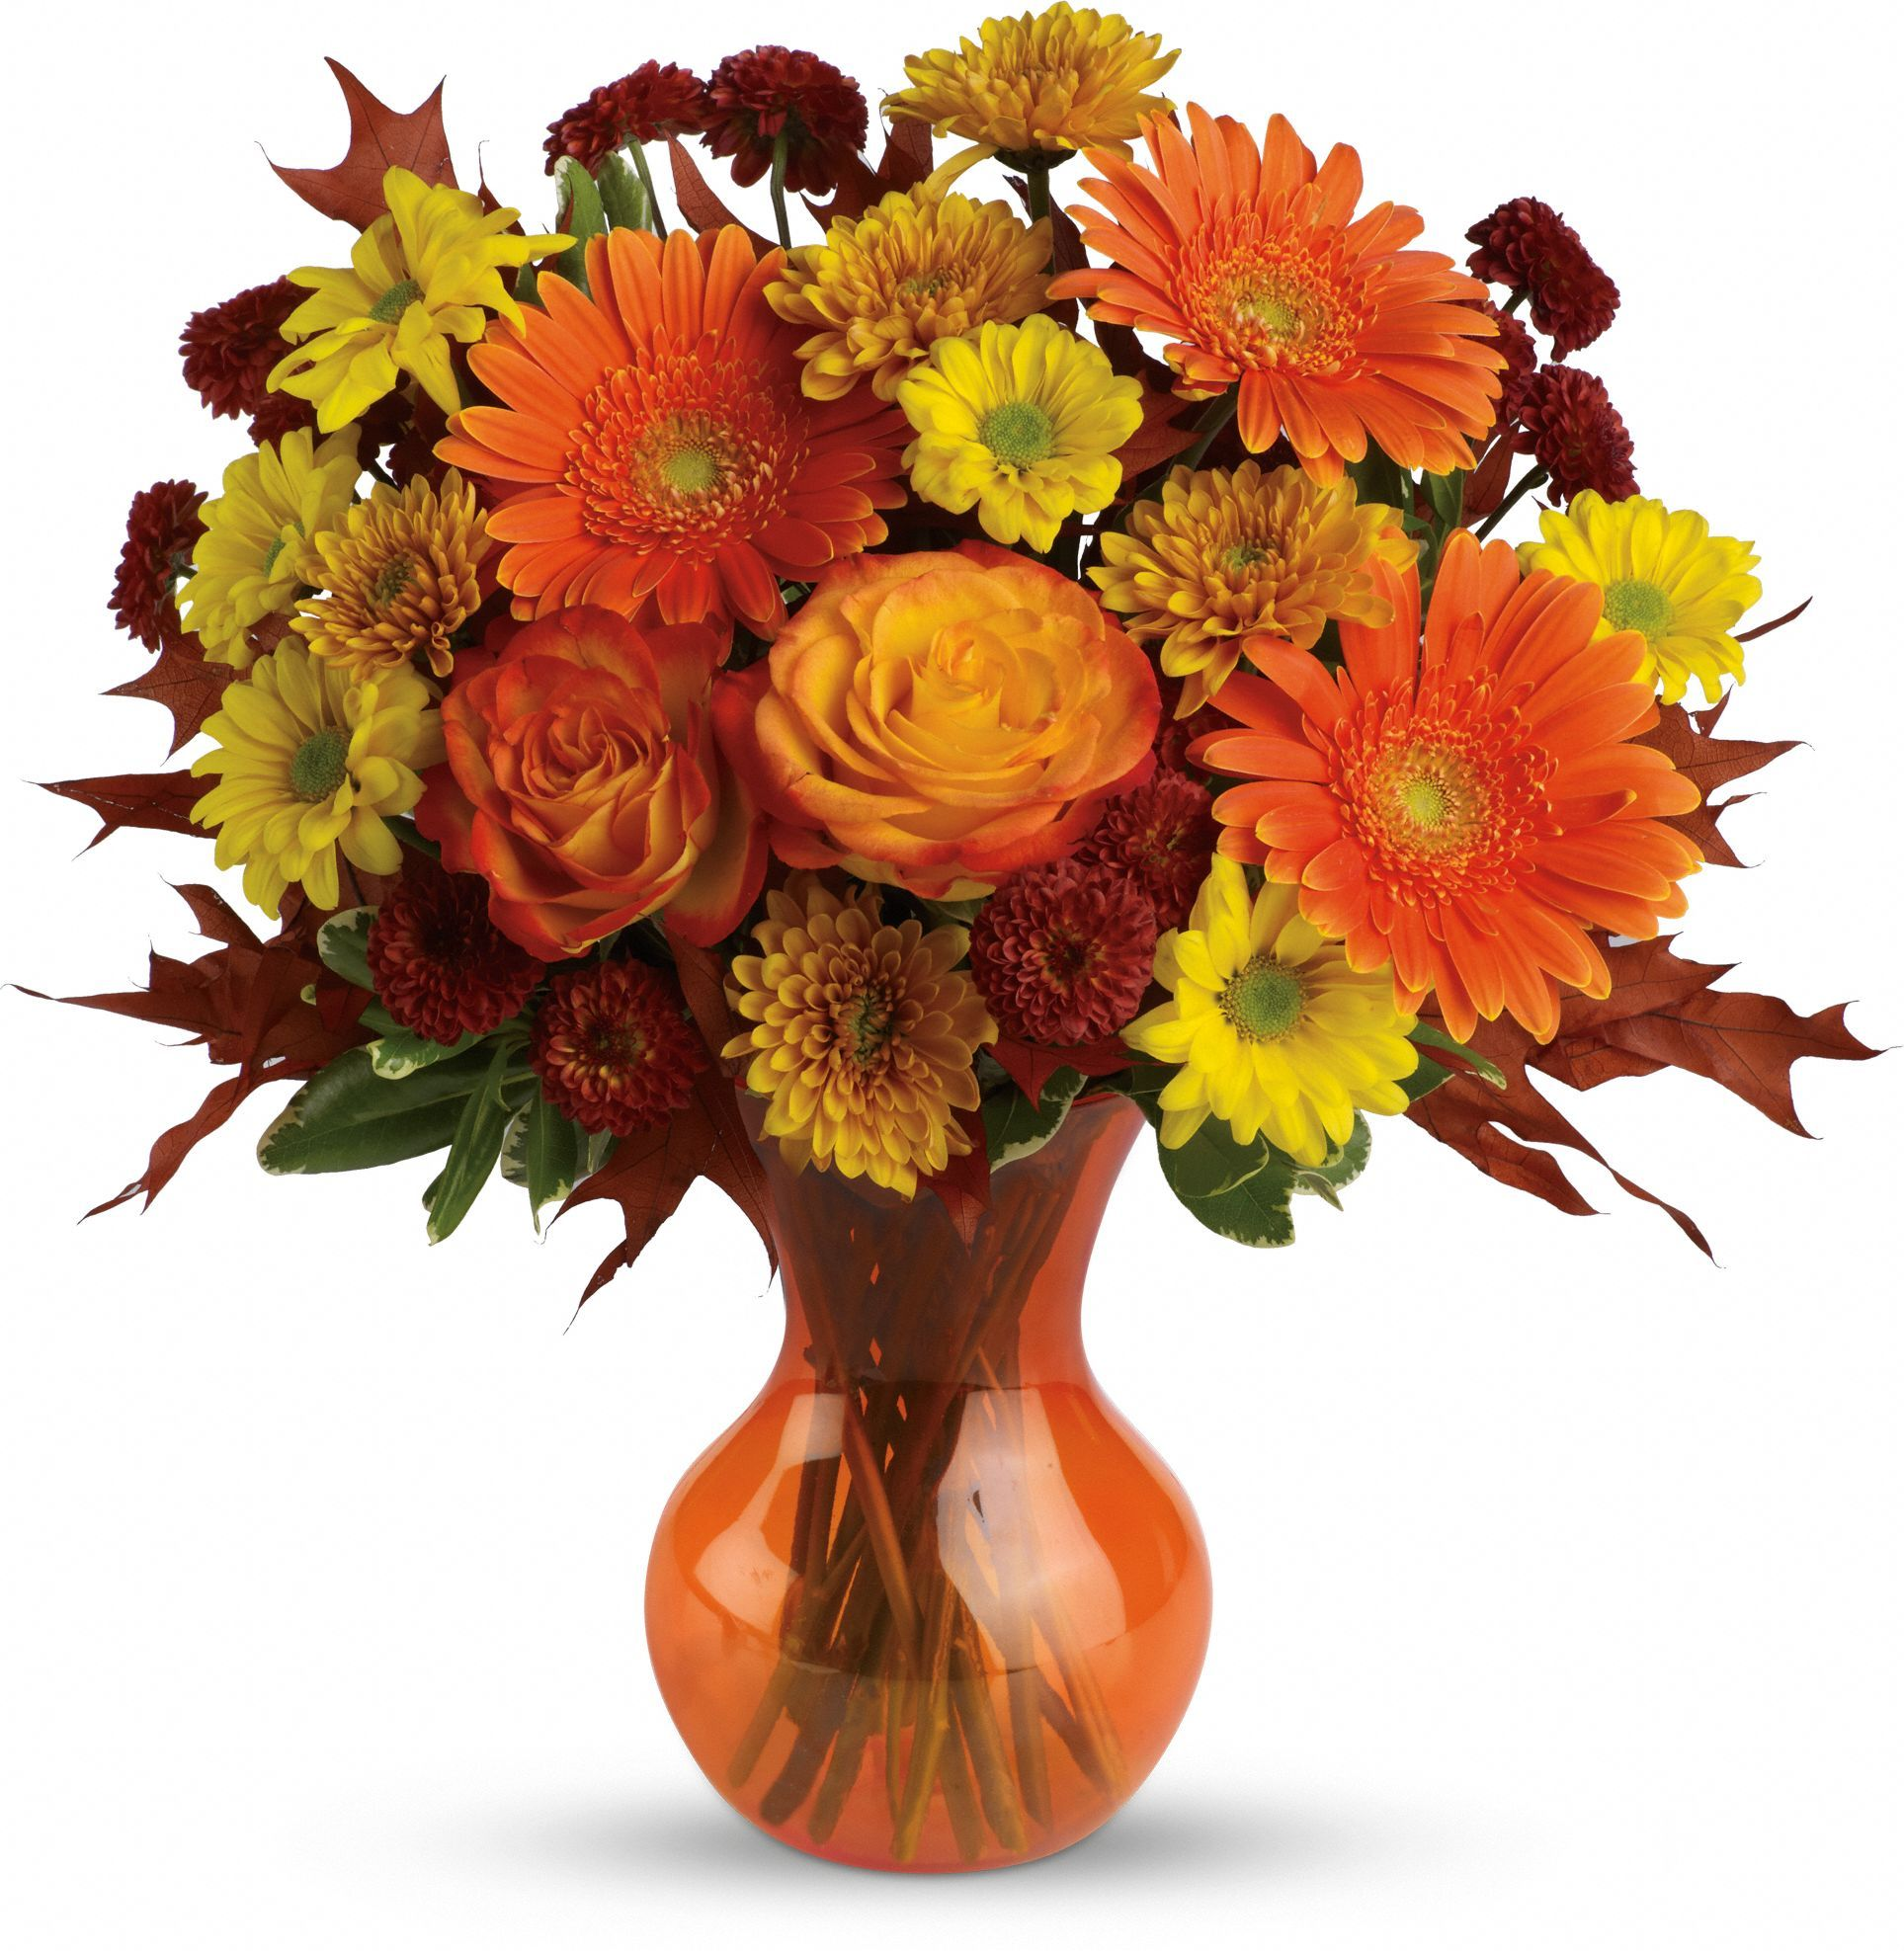 Telefloras forever fall take my vows in the fall pinterest explore teleflora flowers halloween flowers and more izmirmasajfo Choice Image